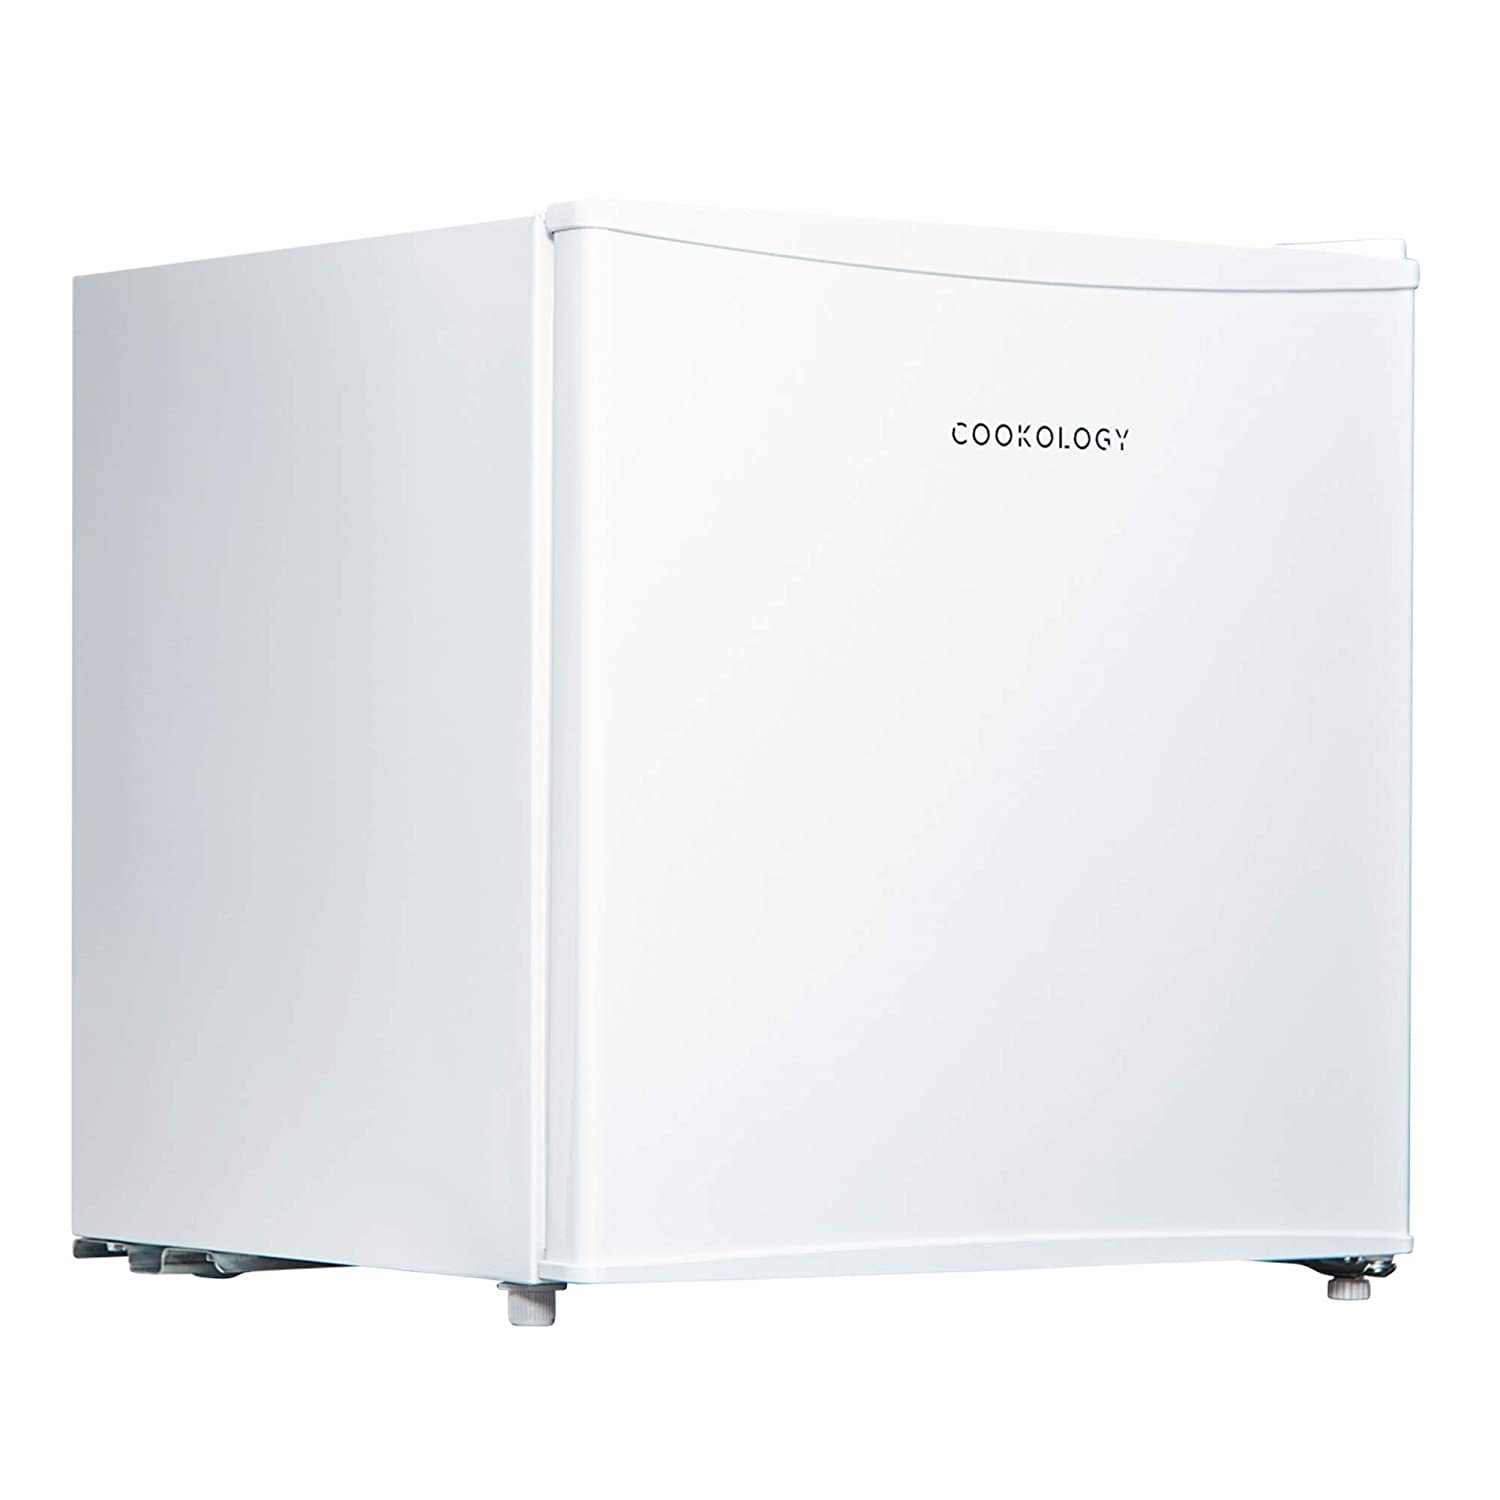 Cookology MFZ32WH Table Top Mini Freezer in White | A+ Rated, 32 Litre, 4 Star Freezer [Energy Class A+]